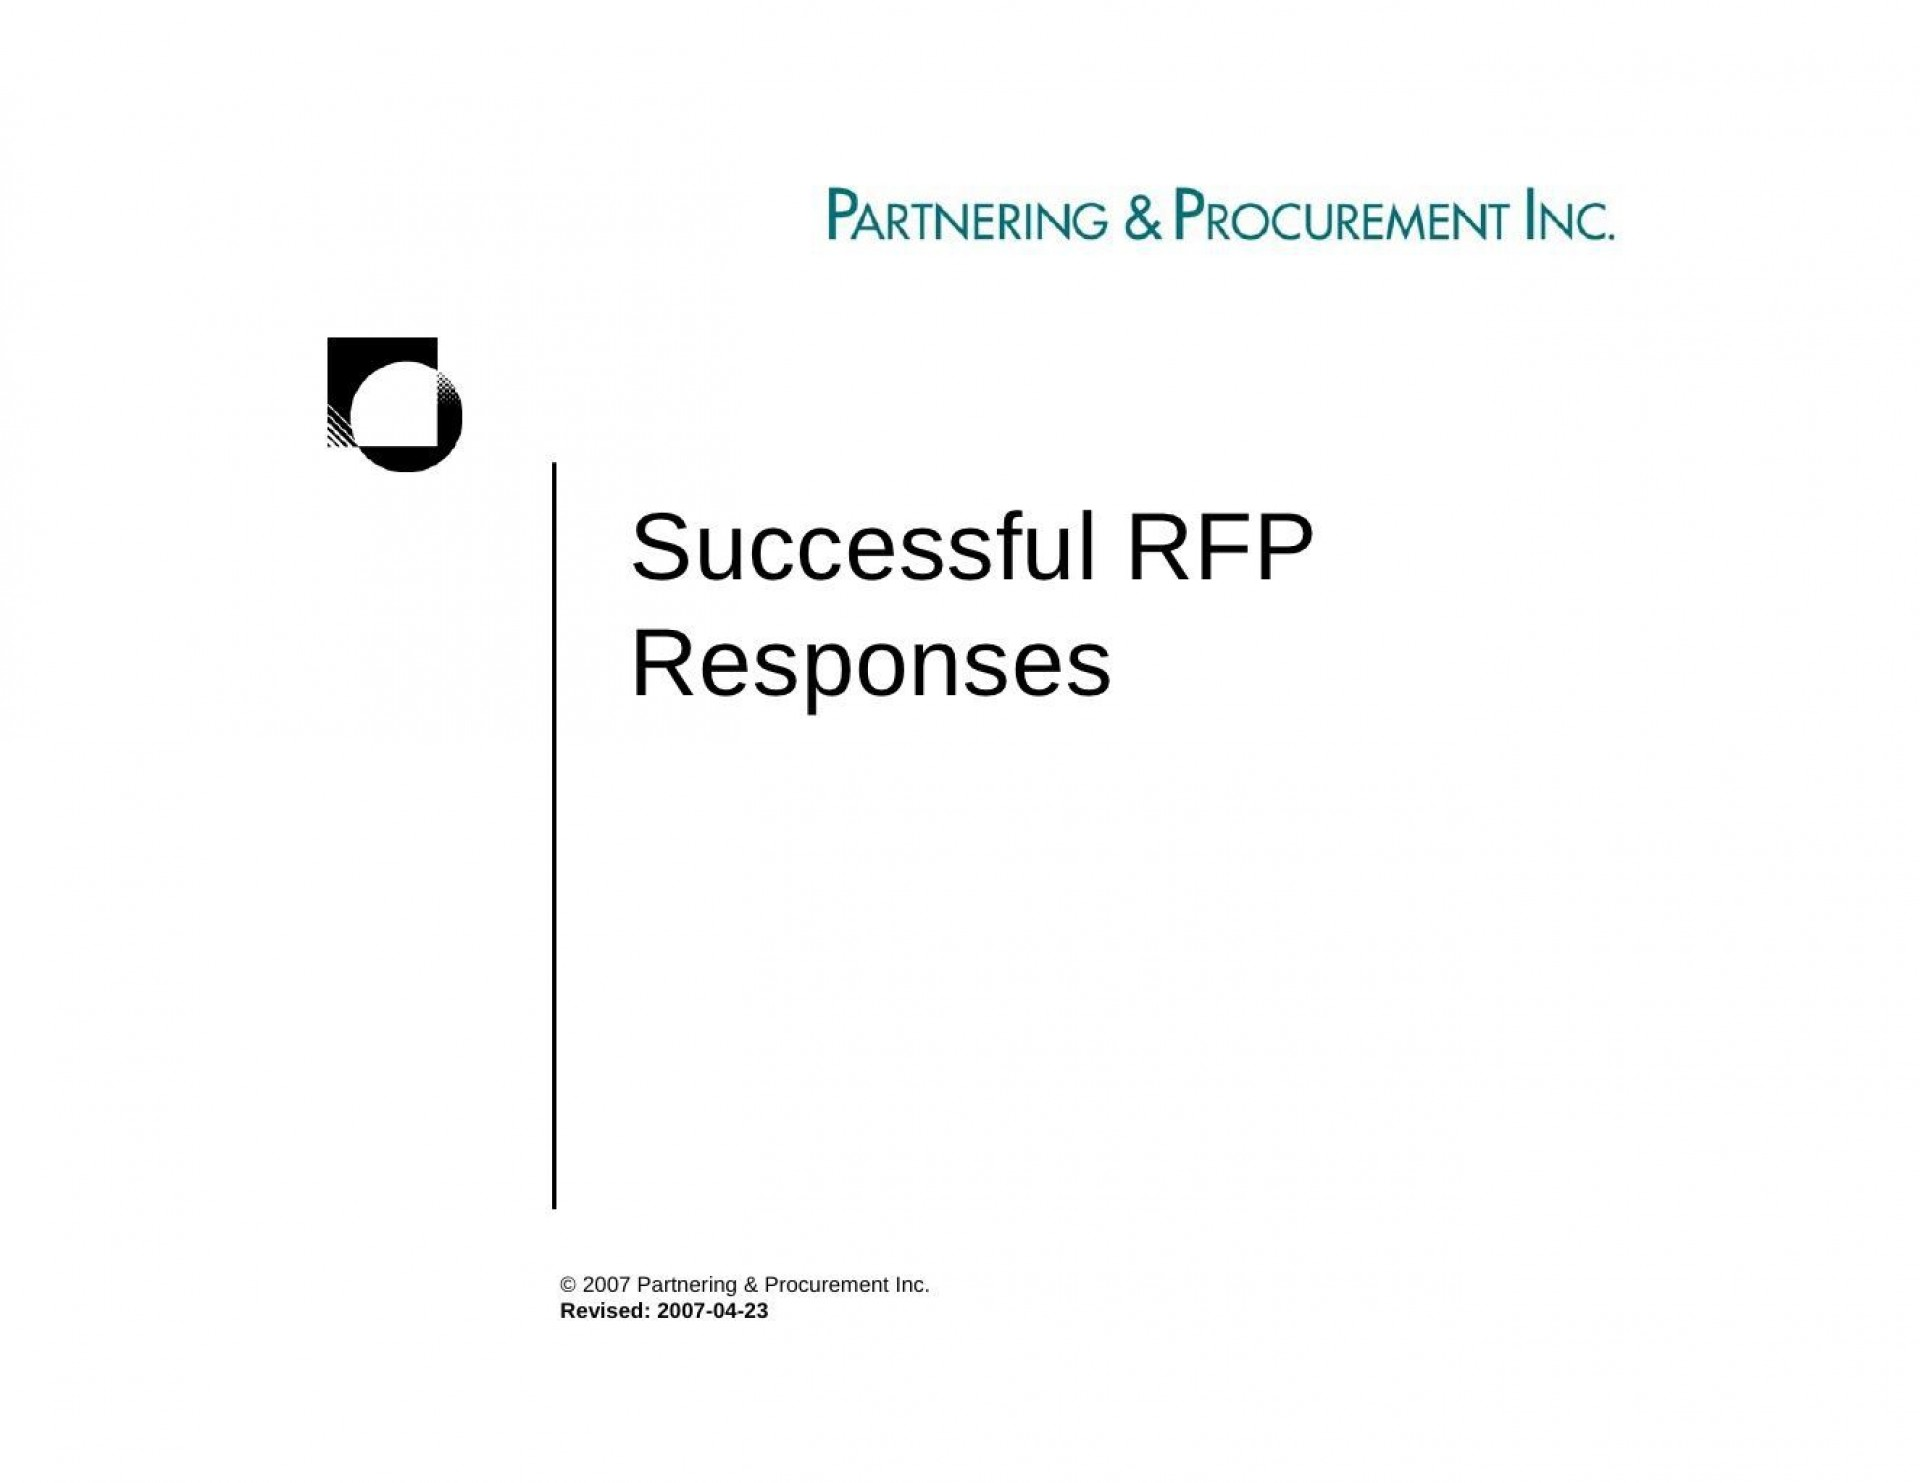 000 Top Request For Proposal Response Template Free Concept 1920